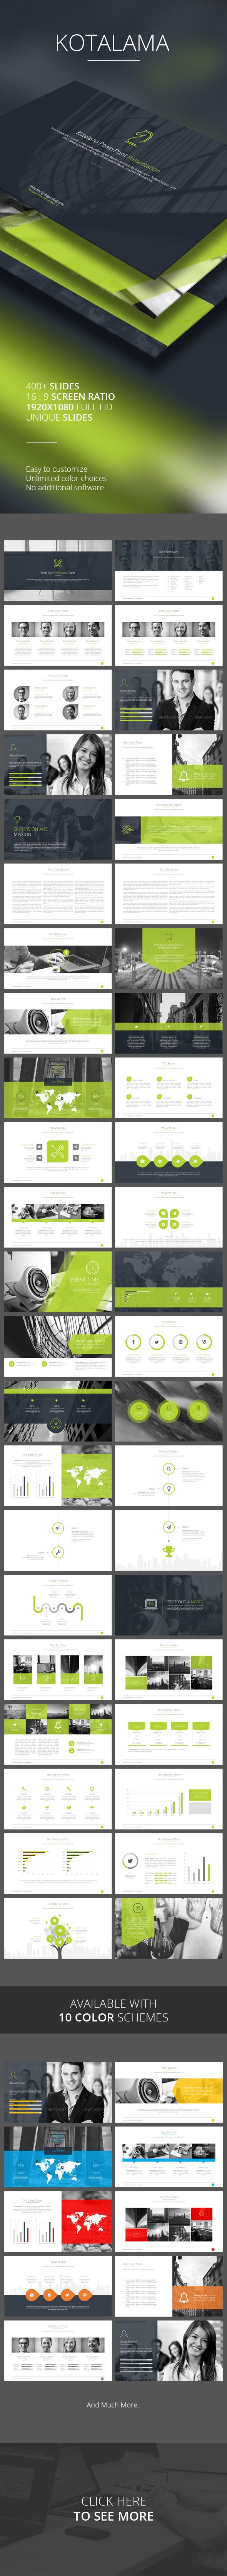 Kotalama PowerPoint Template (PowerPoint Templates)